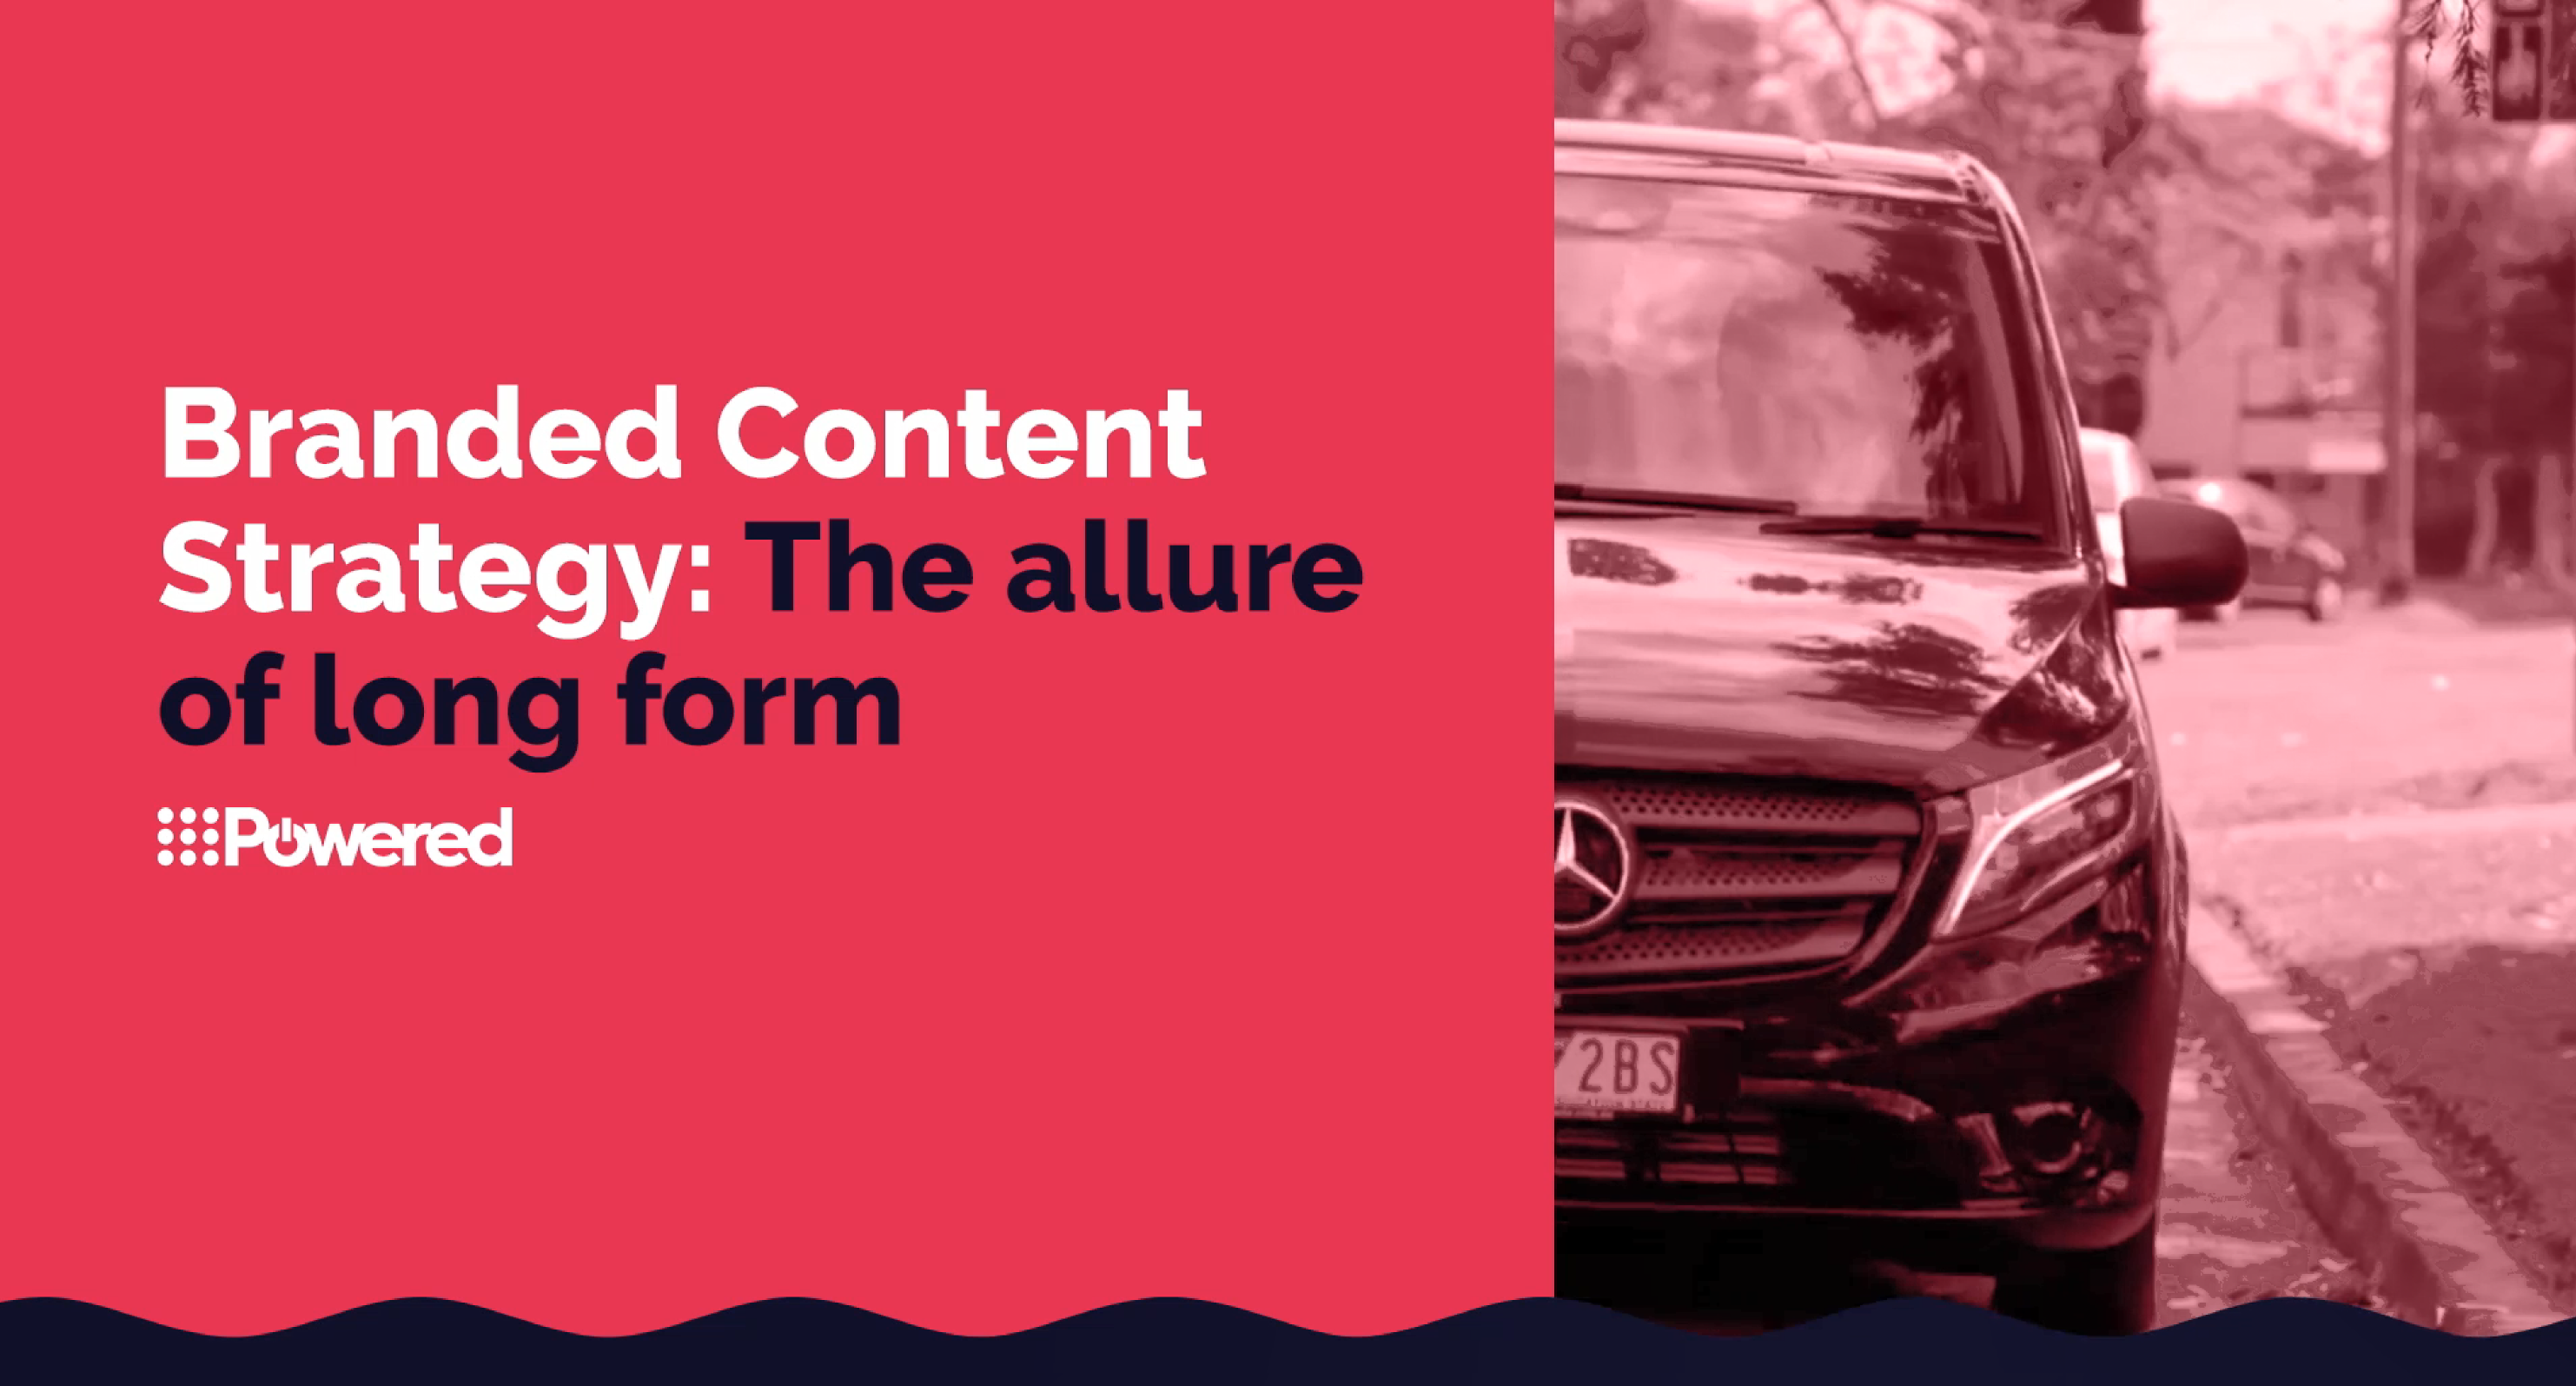 ING Content Boss: Good branded content requires not just bravery but an understanding of the magic of content